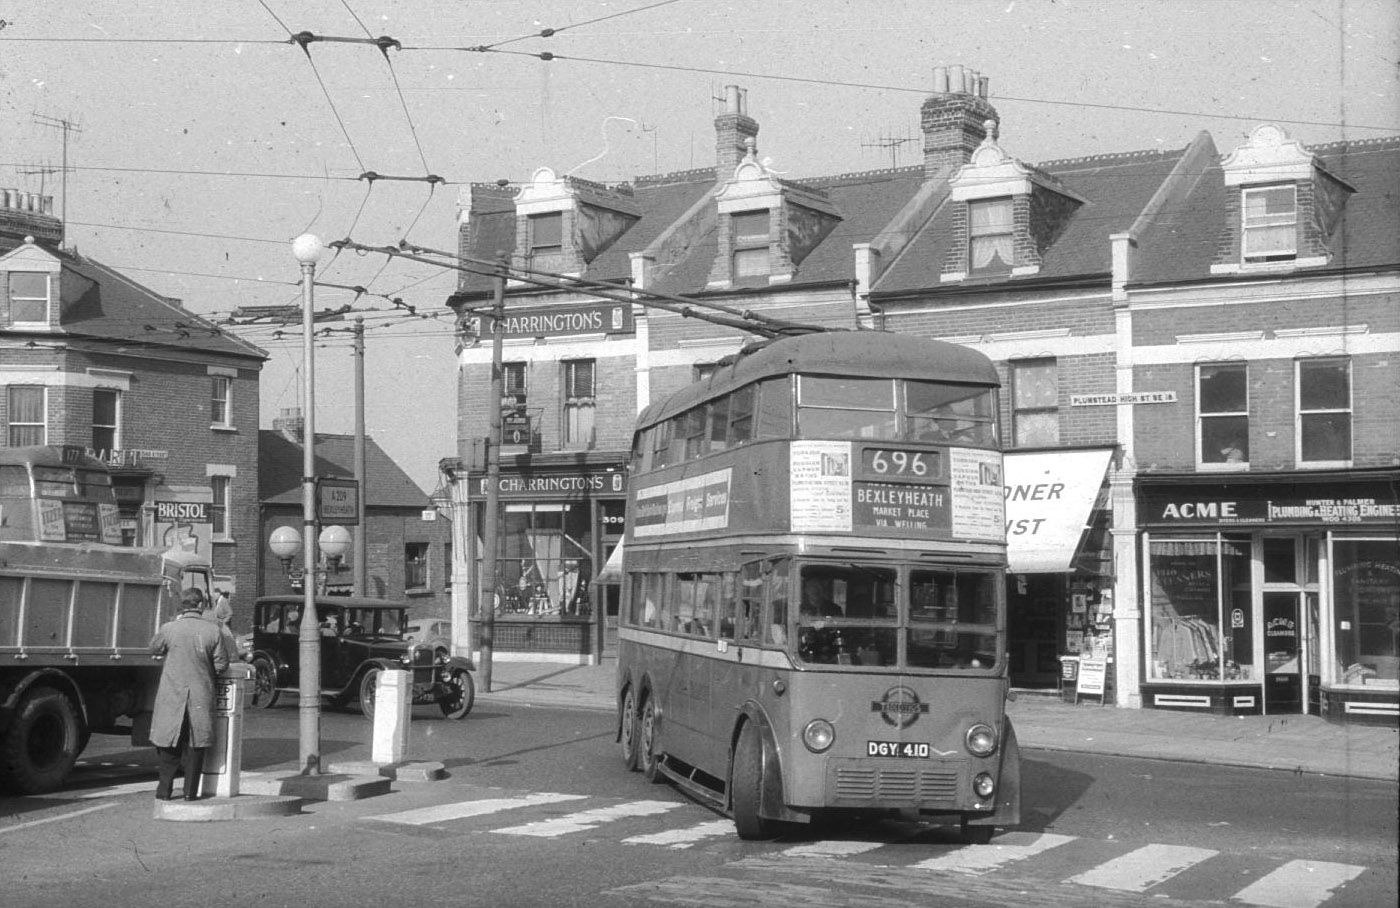 Plumstead High Street / Wickham Lane junction